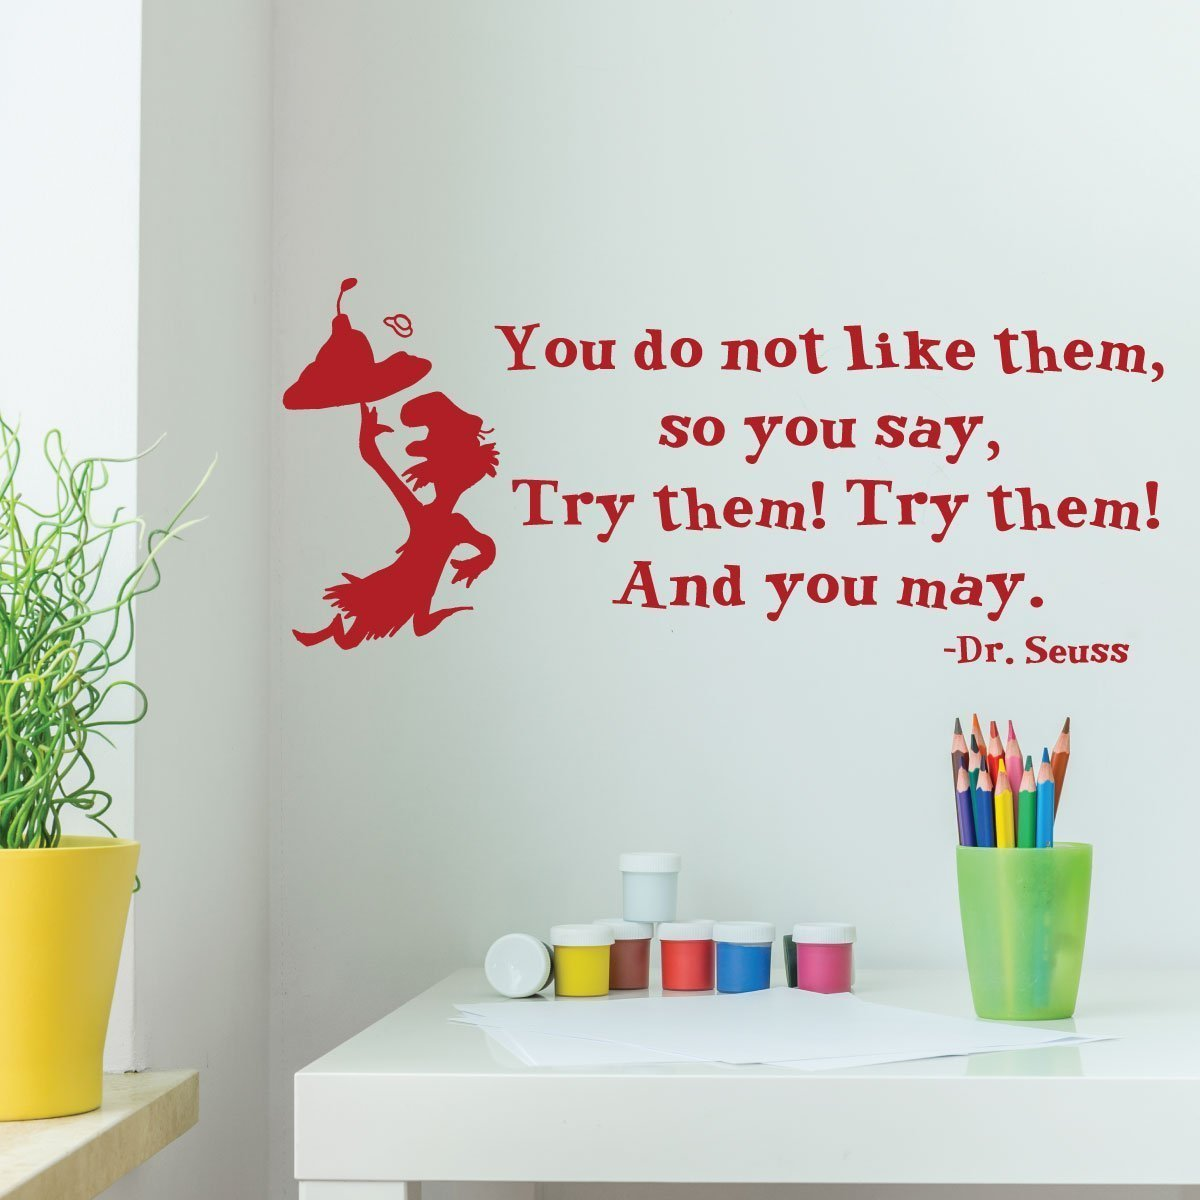 Dr. Seuss Wall Decor- Green Eggs And Hams- You Do Not Like Them, So You Say, Try Them! Try Them! And You May, Playroom Child Bedroom Nursery